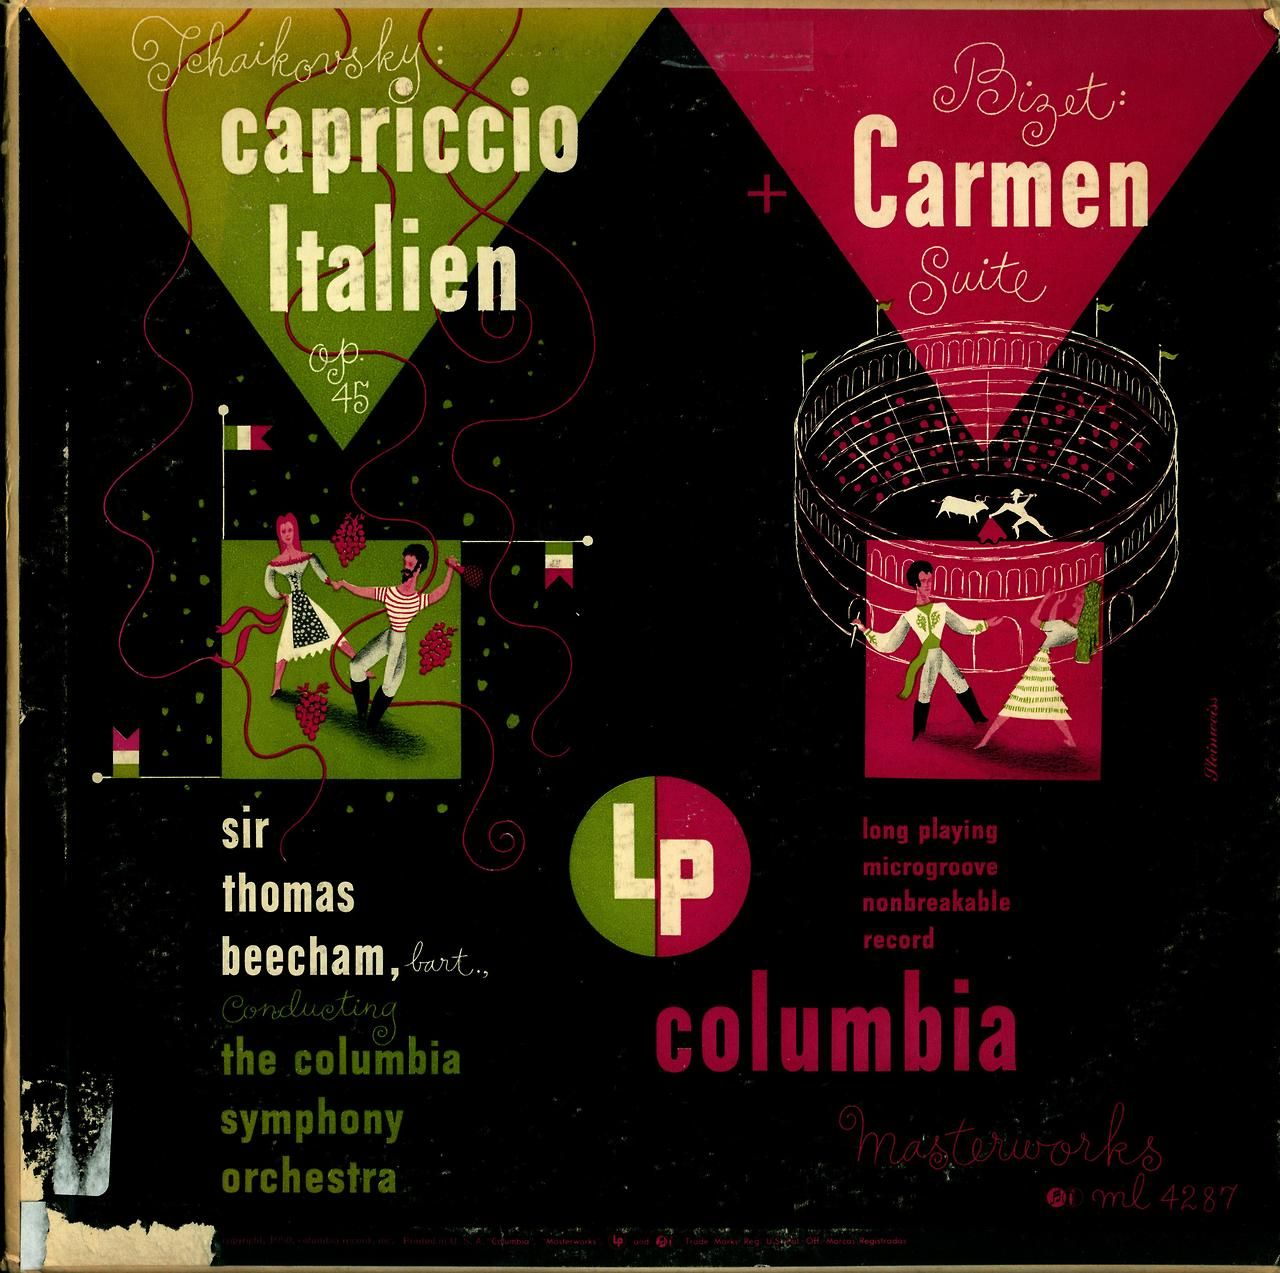 Tchaikovsky- Capriccio Italien Bizet- Carmen Suite Columbia Symphony Orchestra, Sir Thomas Beecham, conductor Columbia Masterworks ML 4287 (1950) Cover Art by Alex Steinweiss